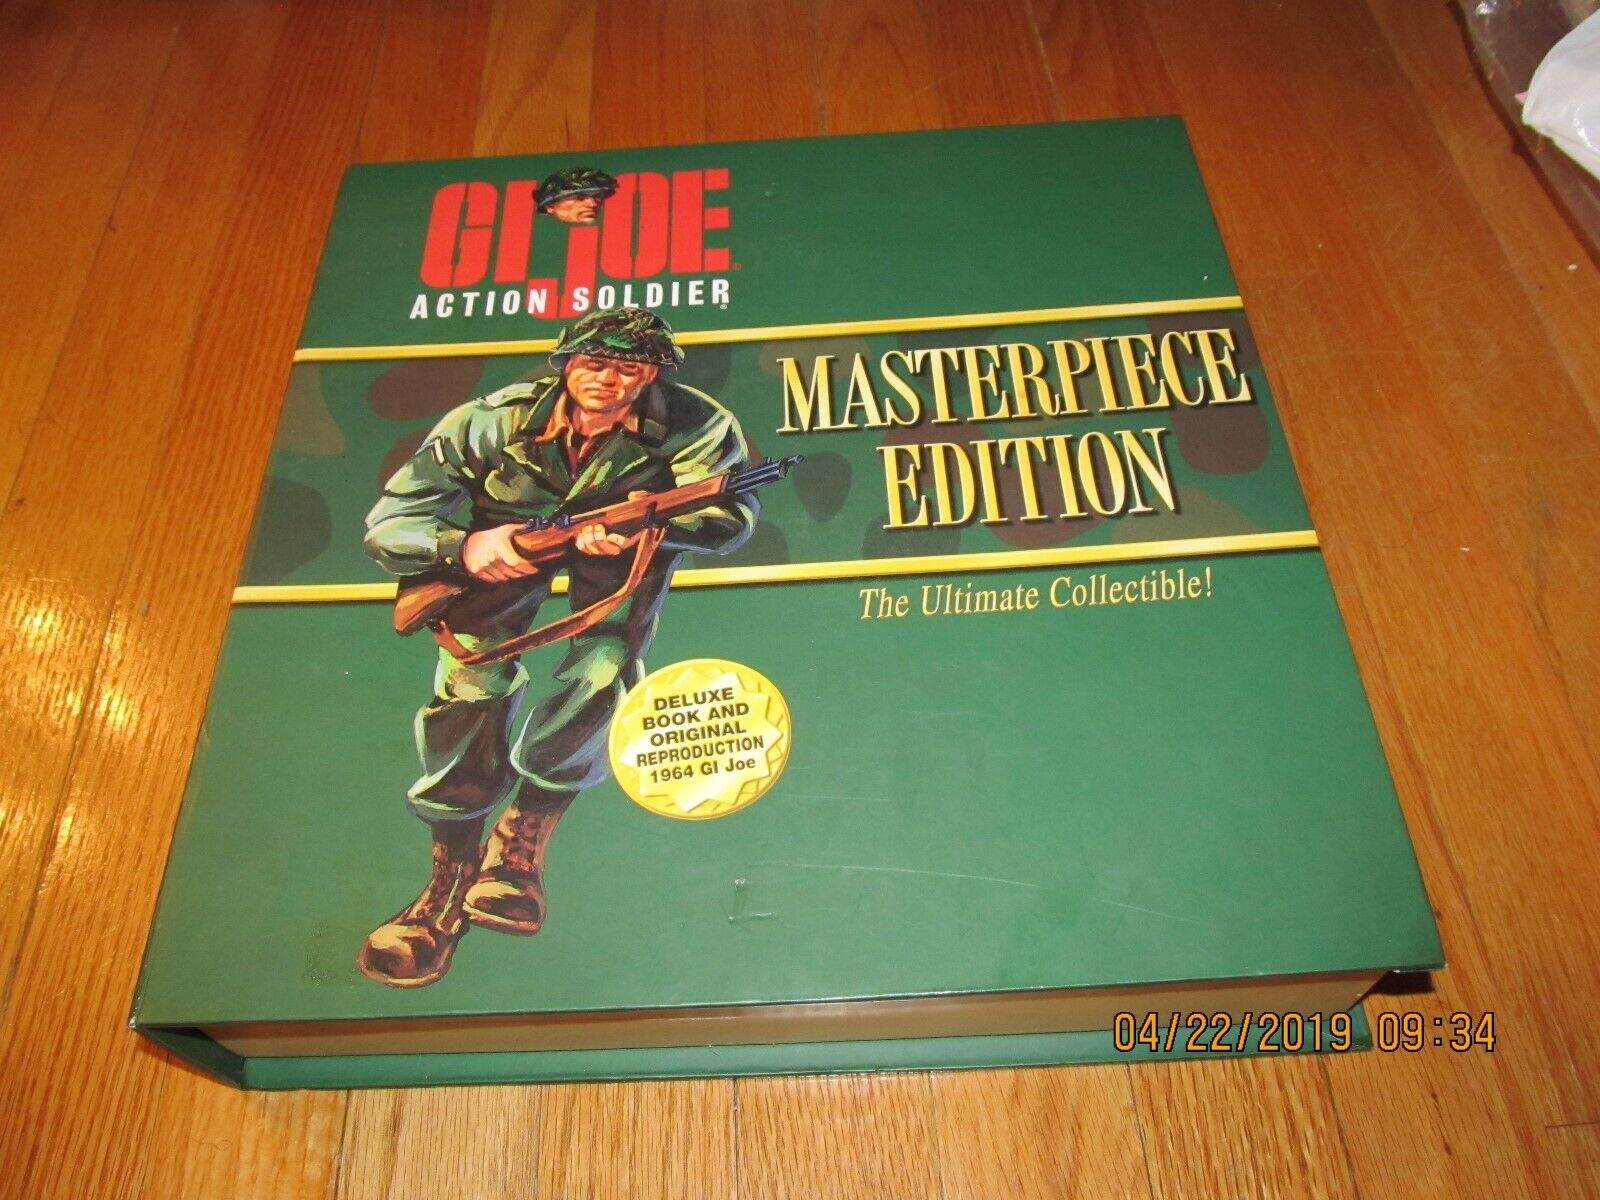 NEW 1996 GI JOE ACTION SOLDIER MASTERPIECE EDITION VOL 1 - BOOK & REPRO 1964